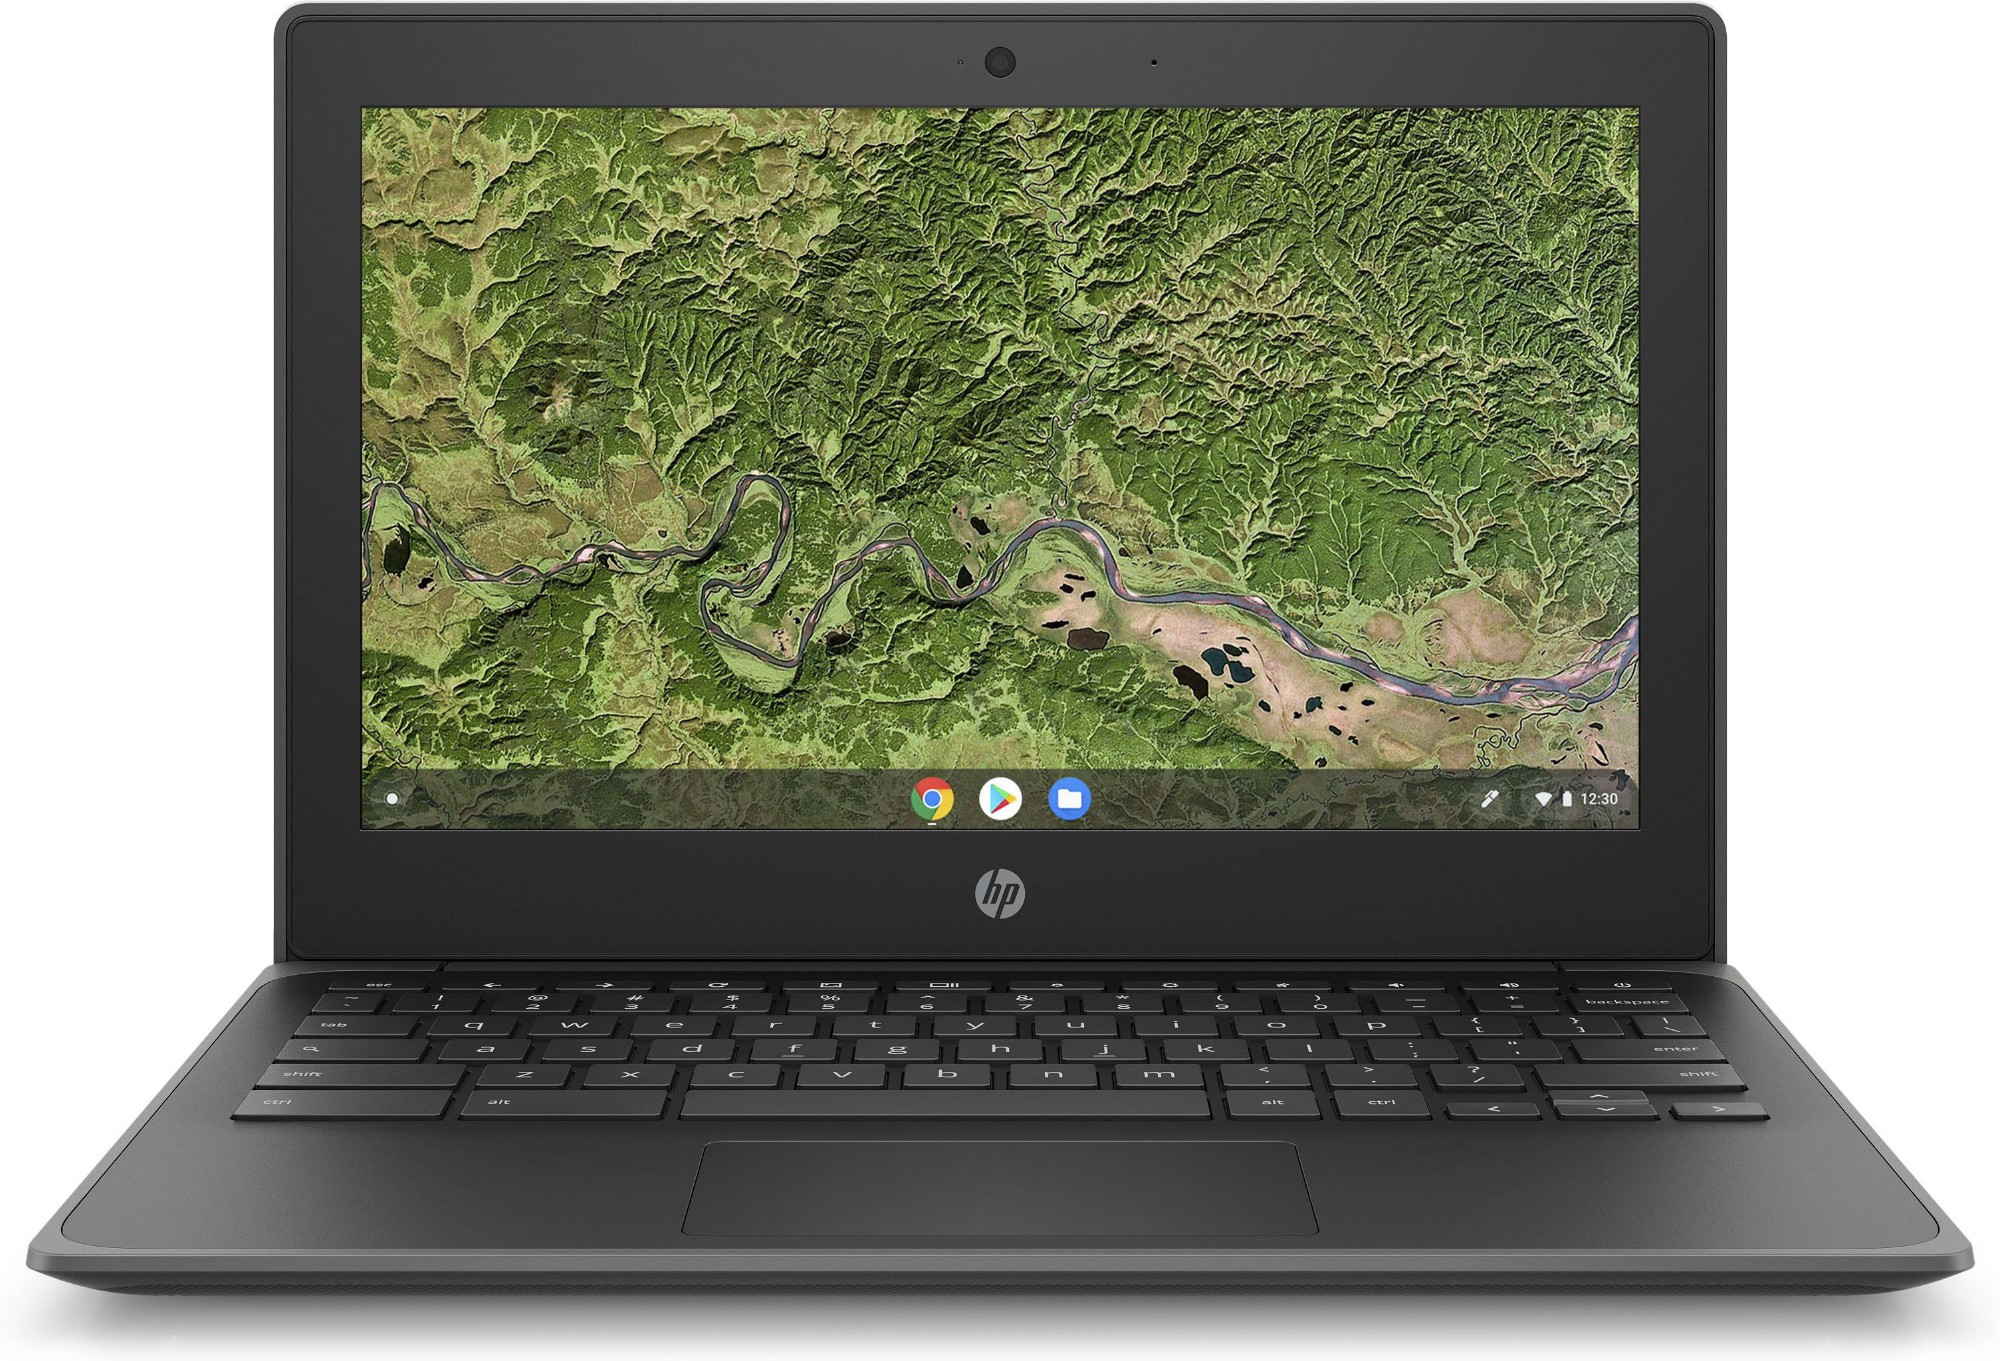 "HP Chromebook 11A G8 EE Gray 29.5 cm (11.6"""") 1366 x 768 pixels Touchscreen AMD A4 4 GB DDR4-SDRAM 32 GB eMMC Wi-Fi 5 (802.11ac) Chrome OS"